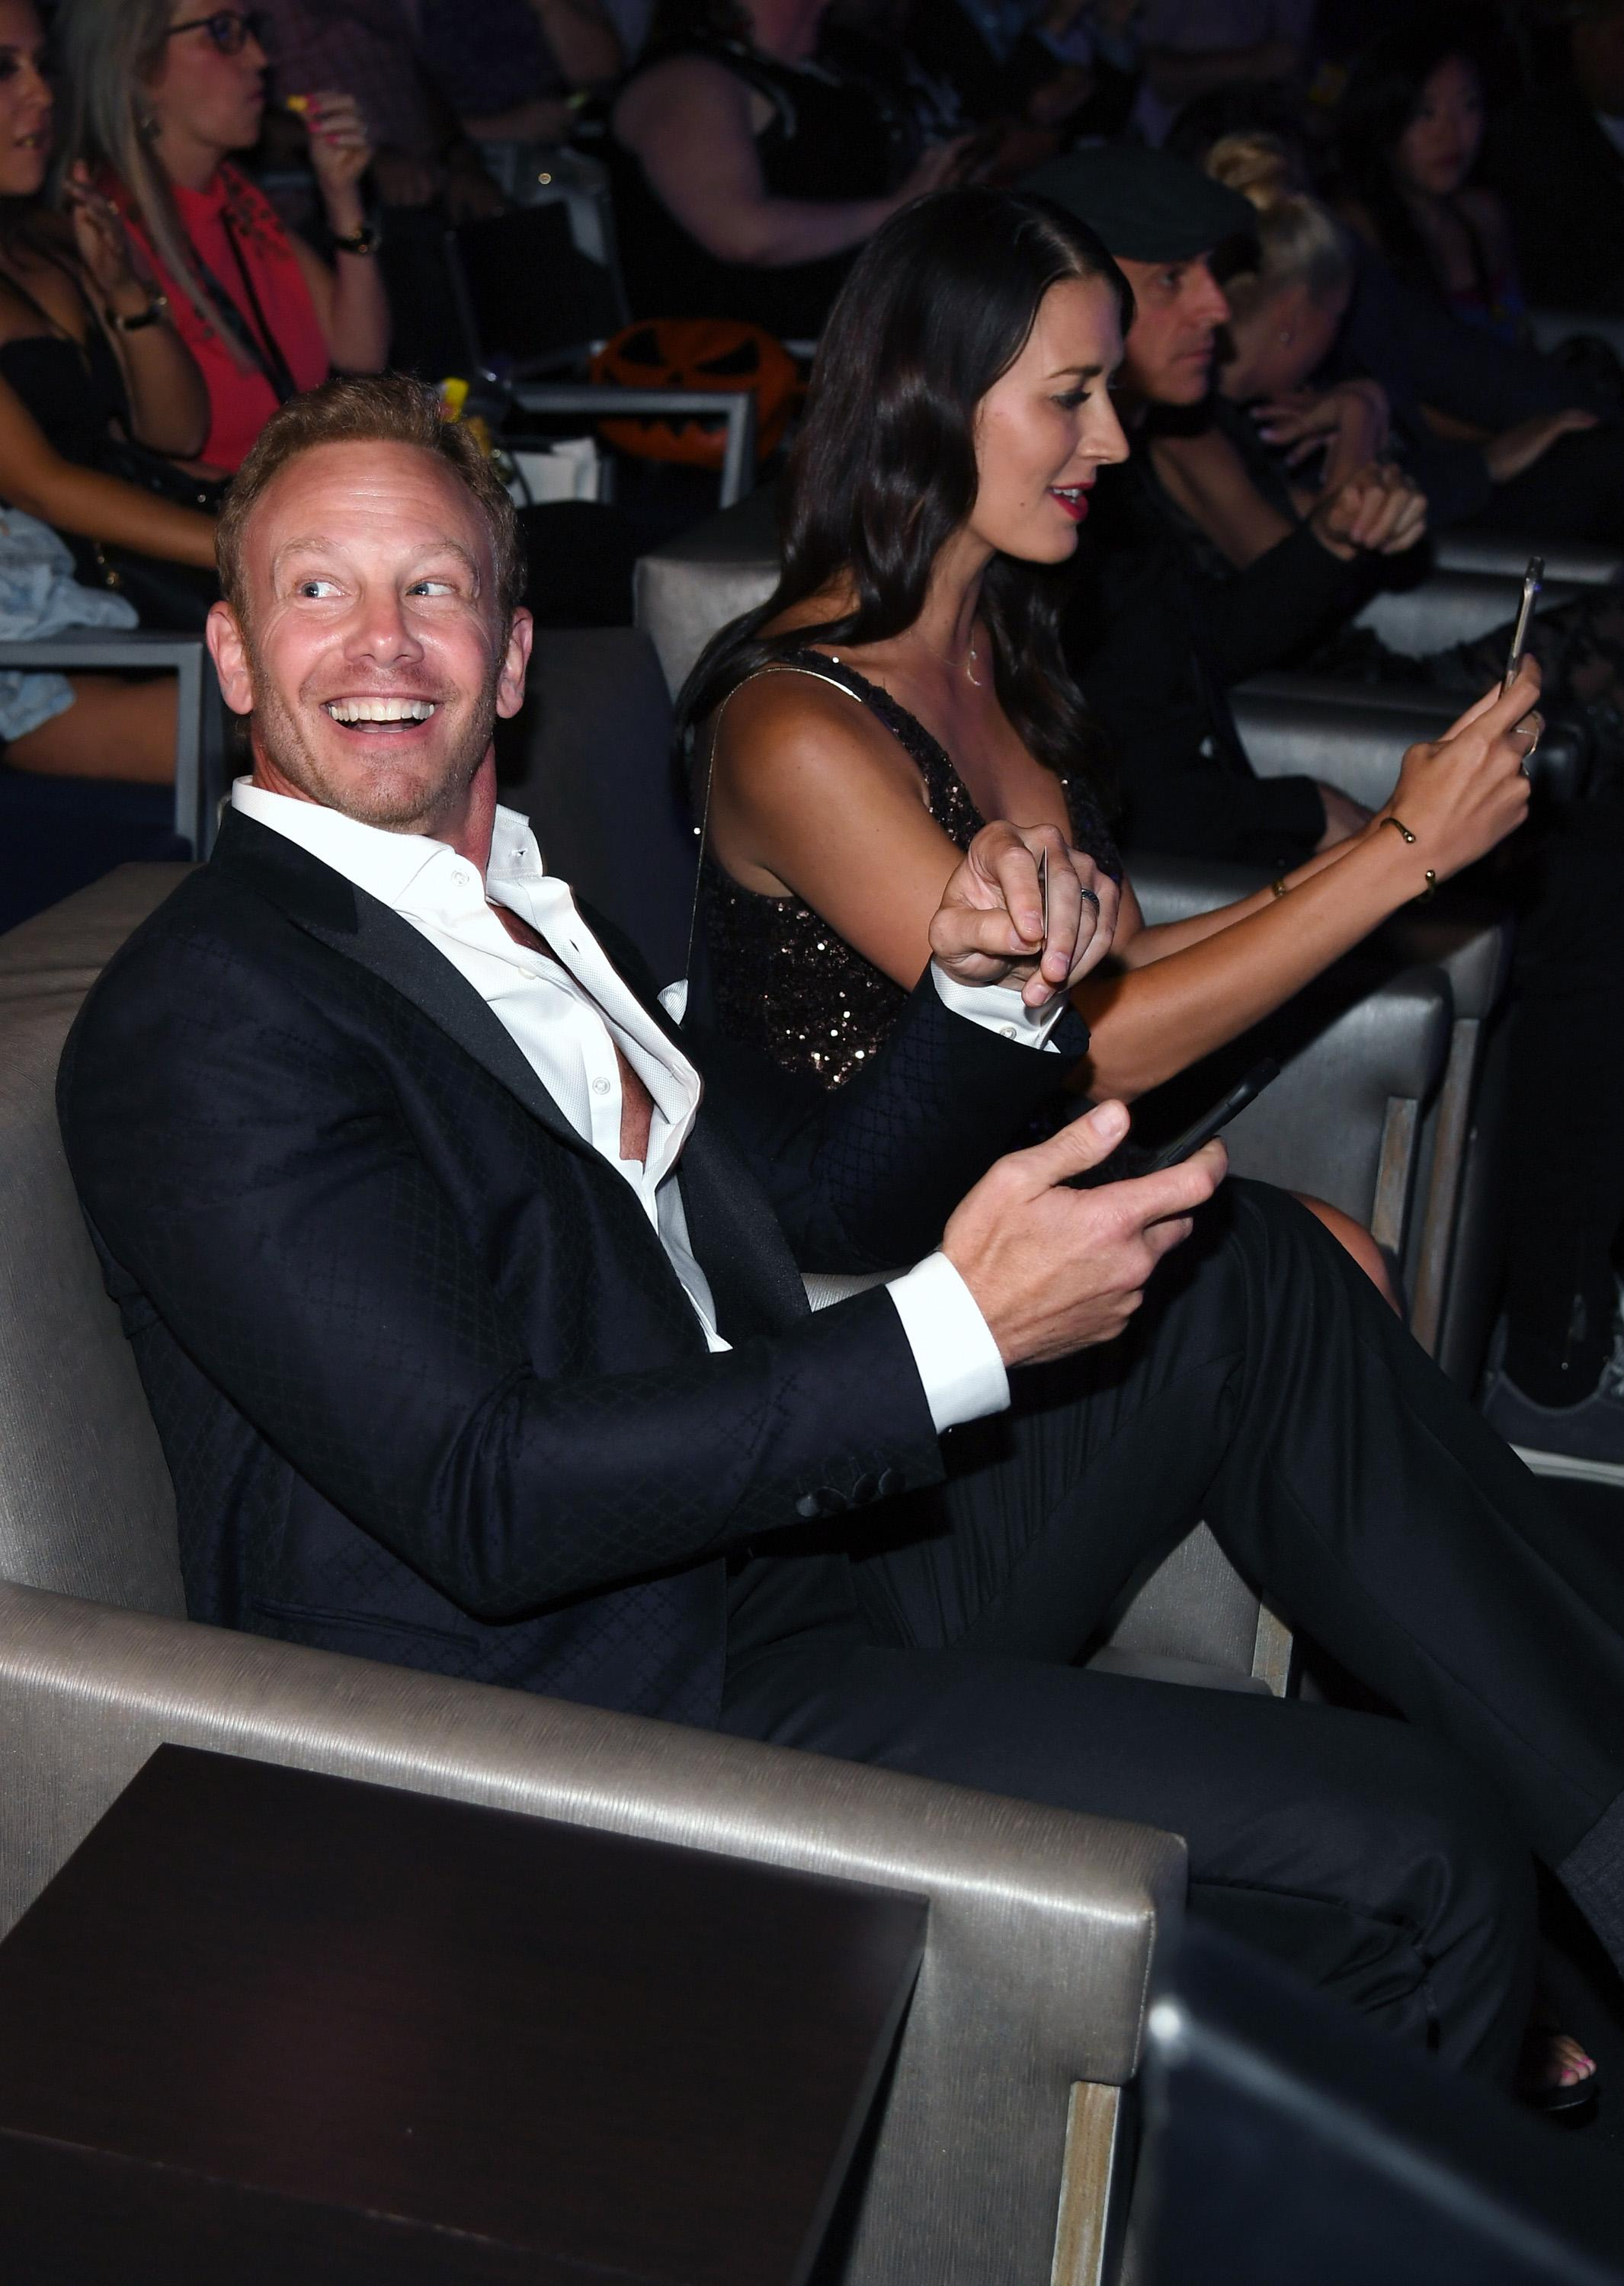 "LAS VEGAS, NV - AUGUST 06:  Actor Ian Ziering (L) and his wife Erin Kristine Ludwig attend the premiere of ""Sharknado 5: Global Swarming"" at The LINQ Hotel & Casino on August 6, 2017 in Las Vegas, Nevada.  (Photo by Ethan Miller/Getty Images for Caesars Entertainment )"